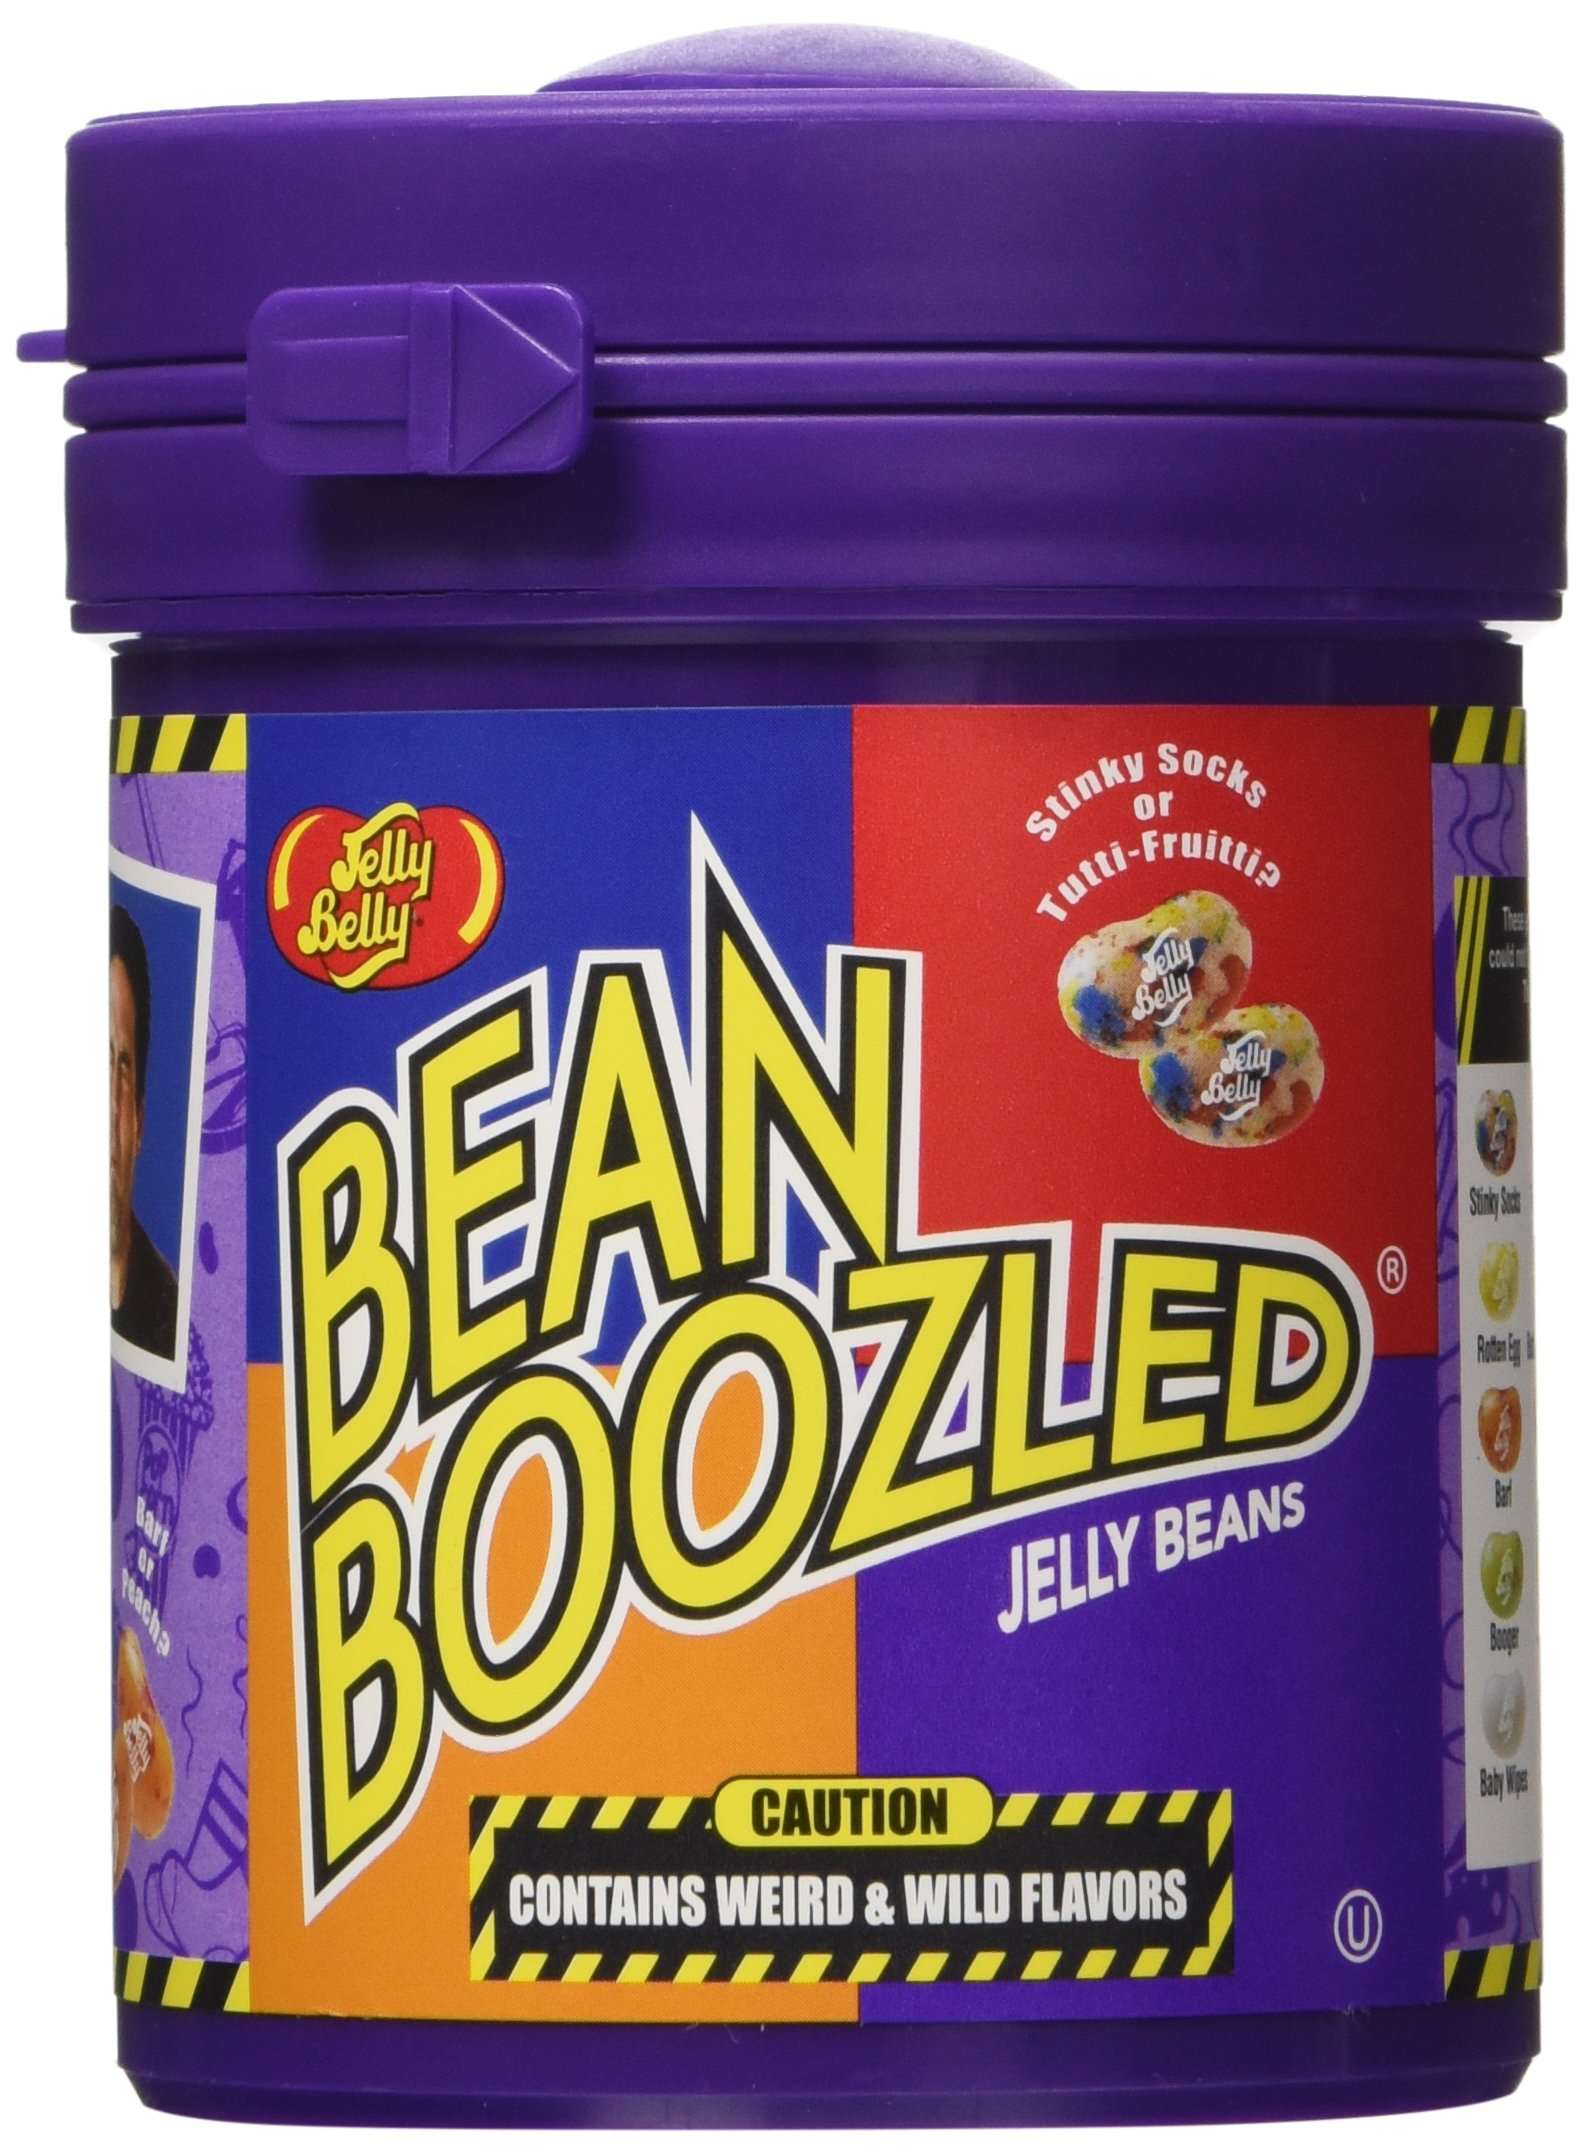 Jelly Belly 63965 3.5 Oz. Beanboozled Mystery Bean Dispenser (Pack of 3) by Jelly Belly (Image #1)